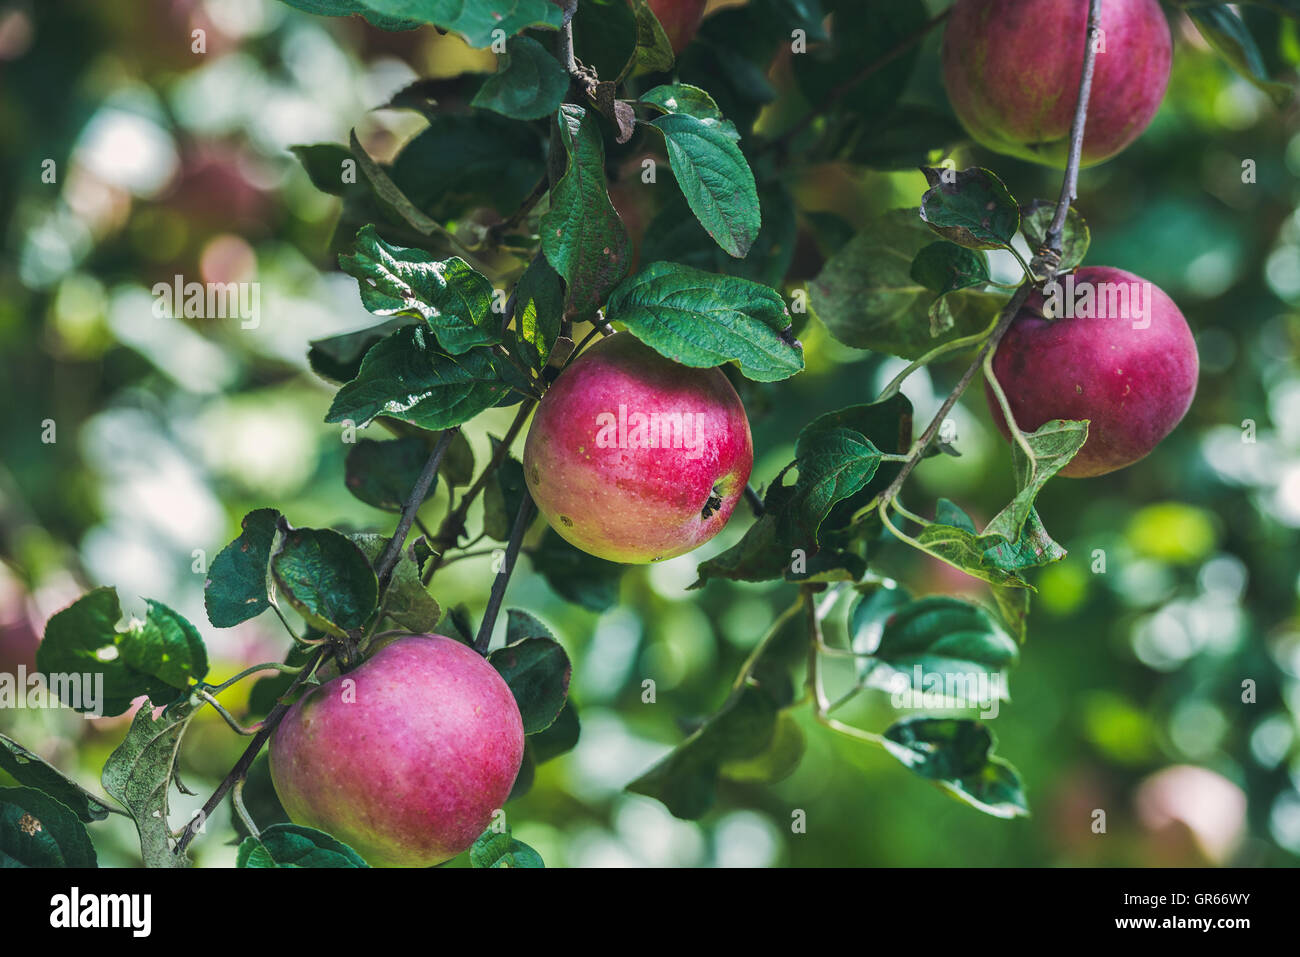 Fresh harvest apples on tree branch in garden - Stock Image